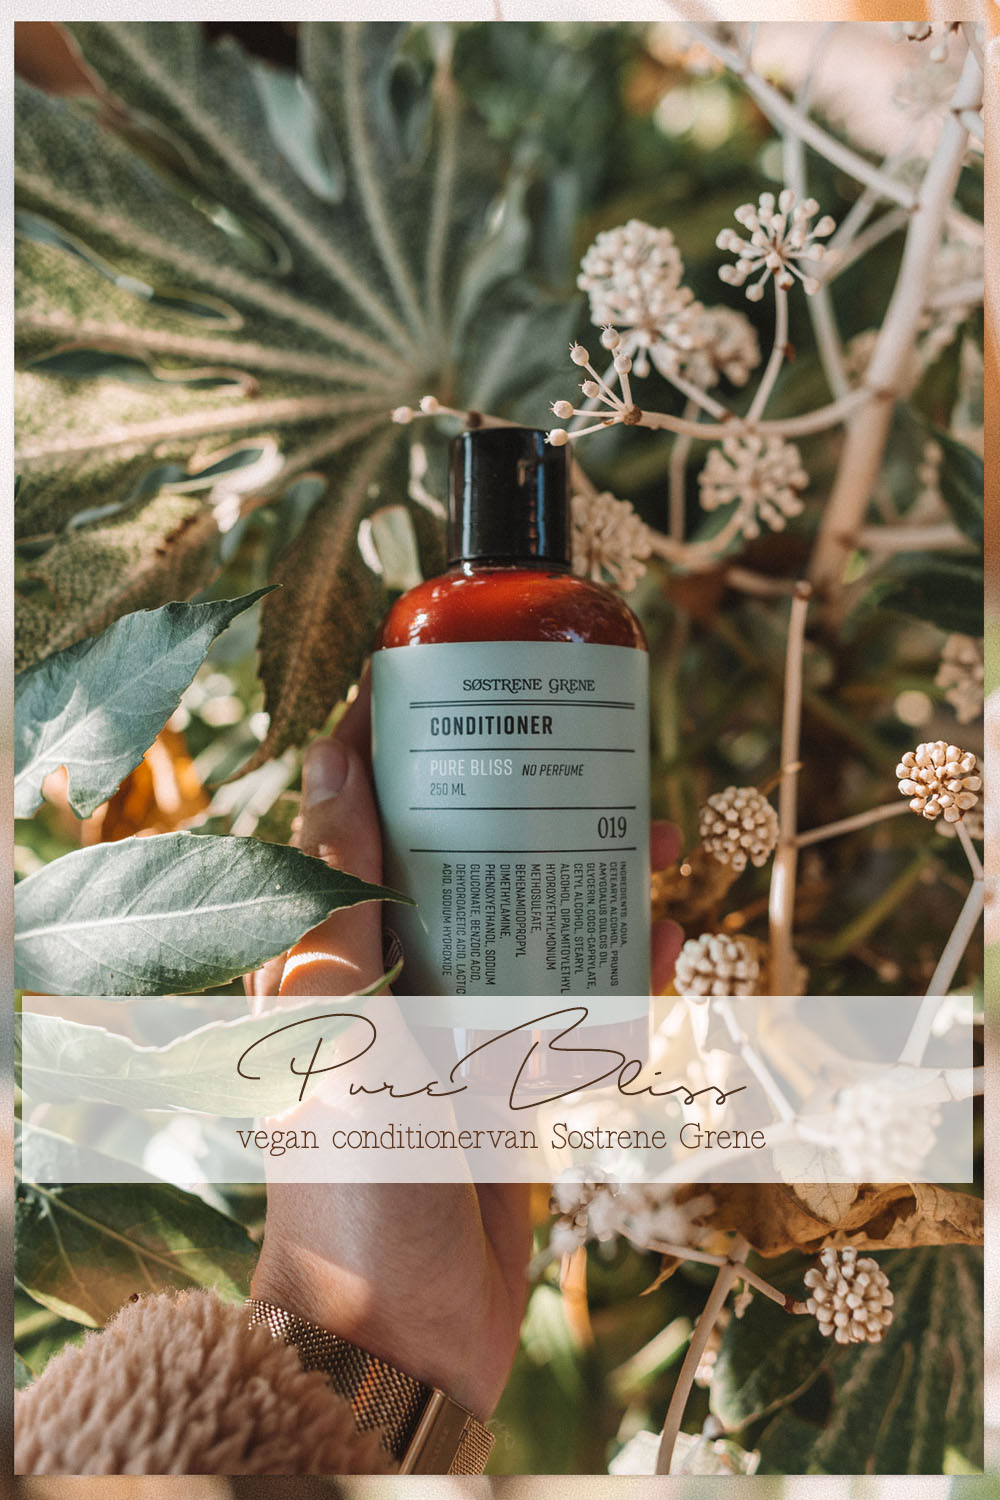 Søstrene Grene Pure Bliss conditioner